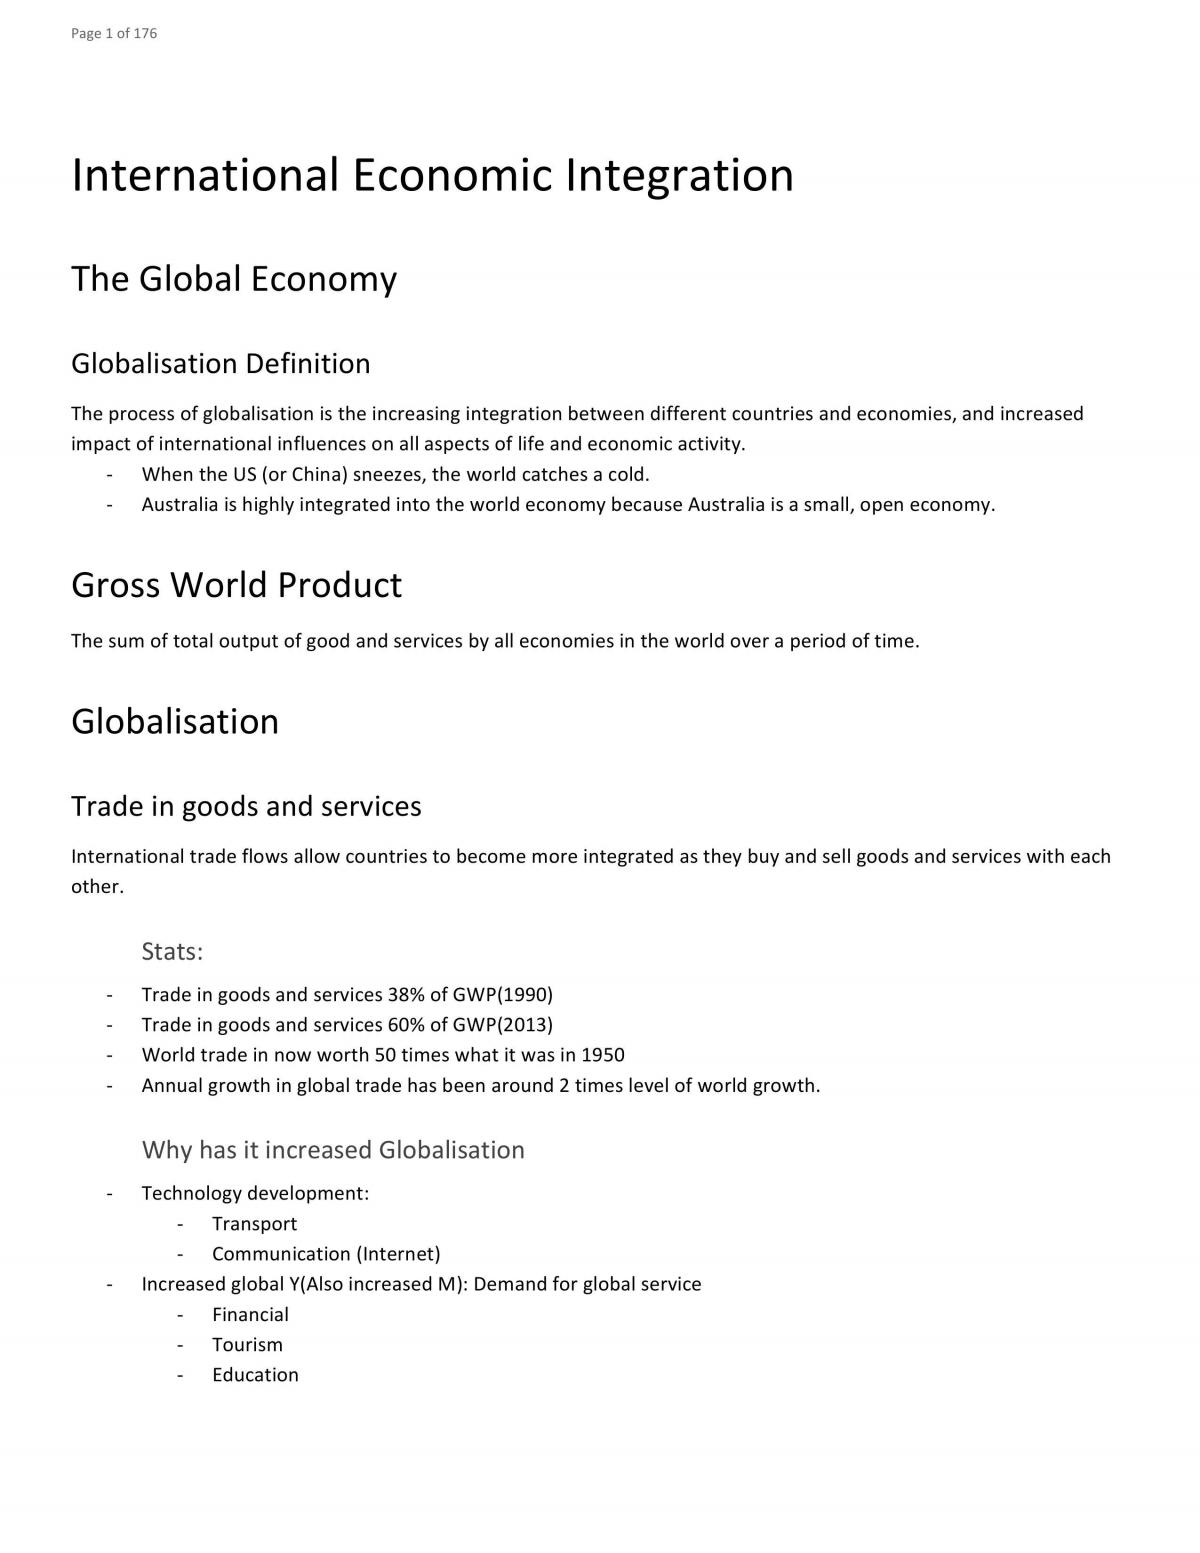 Band 6 Full Economics Course Notes 2017 - 176 Pages - Page 1